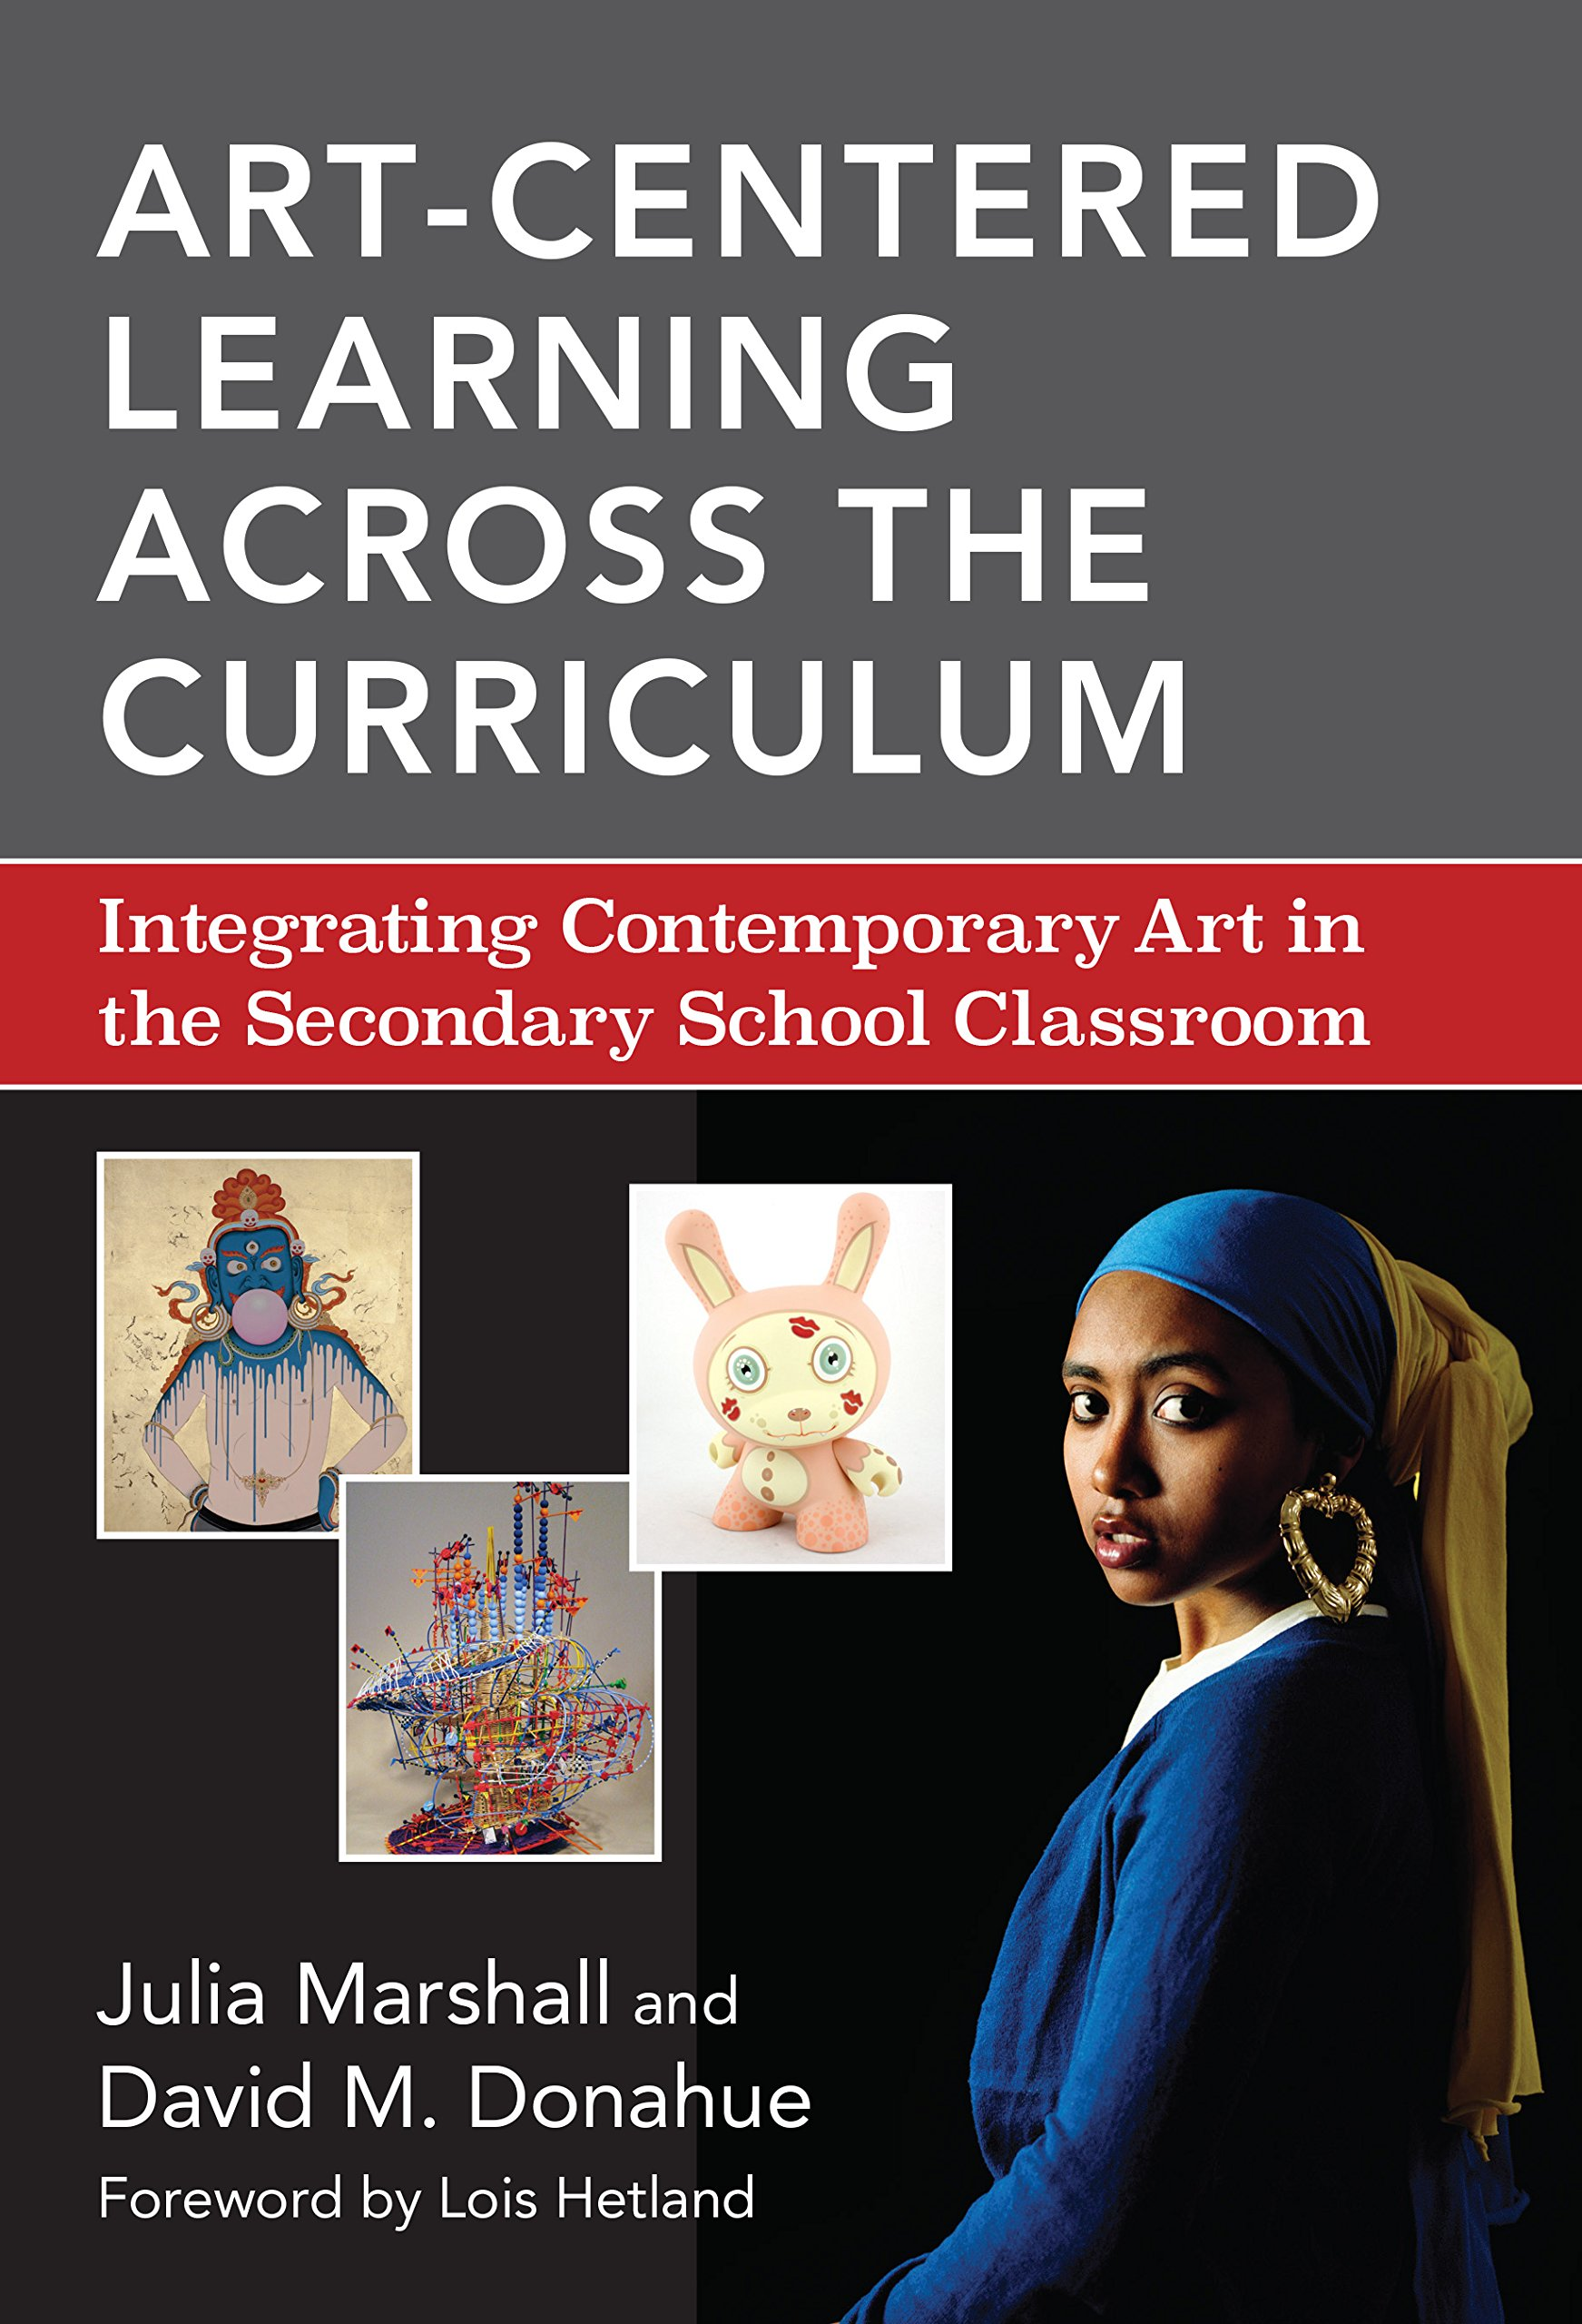 Amazon.com: Art-Centered Learning Across the Curriculum: Integrating ...